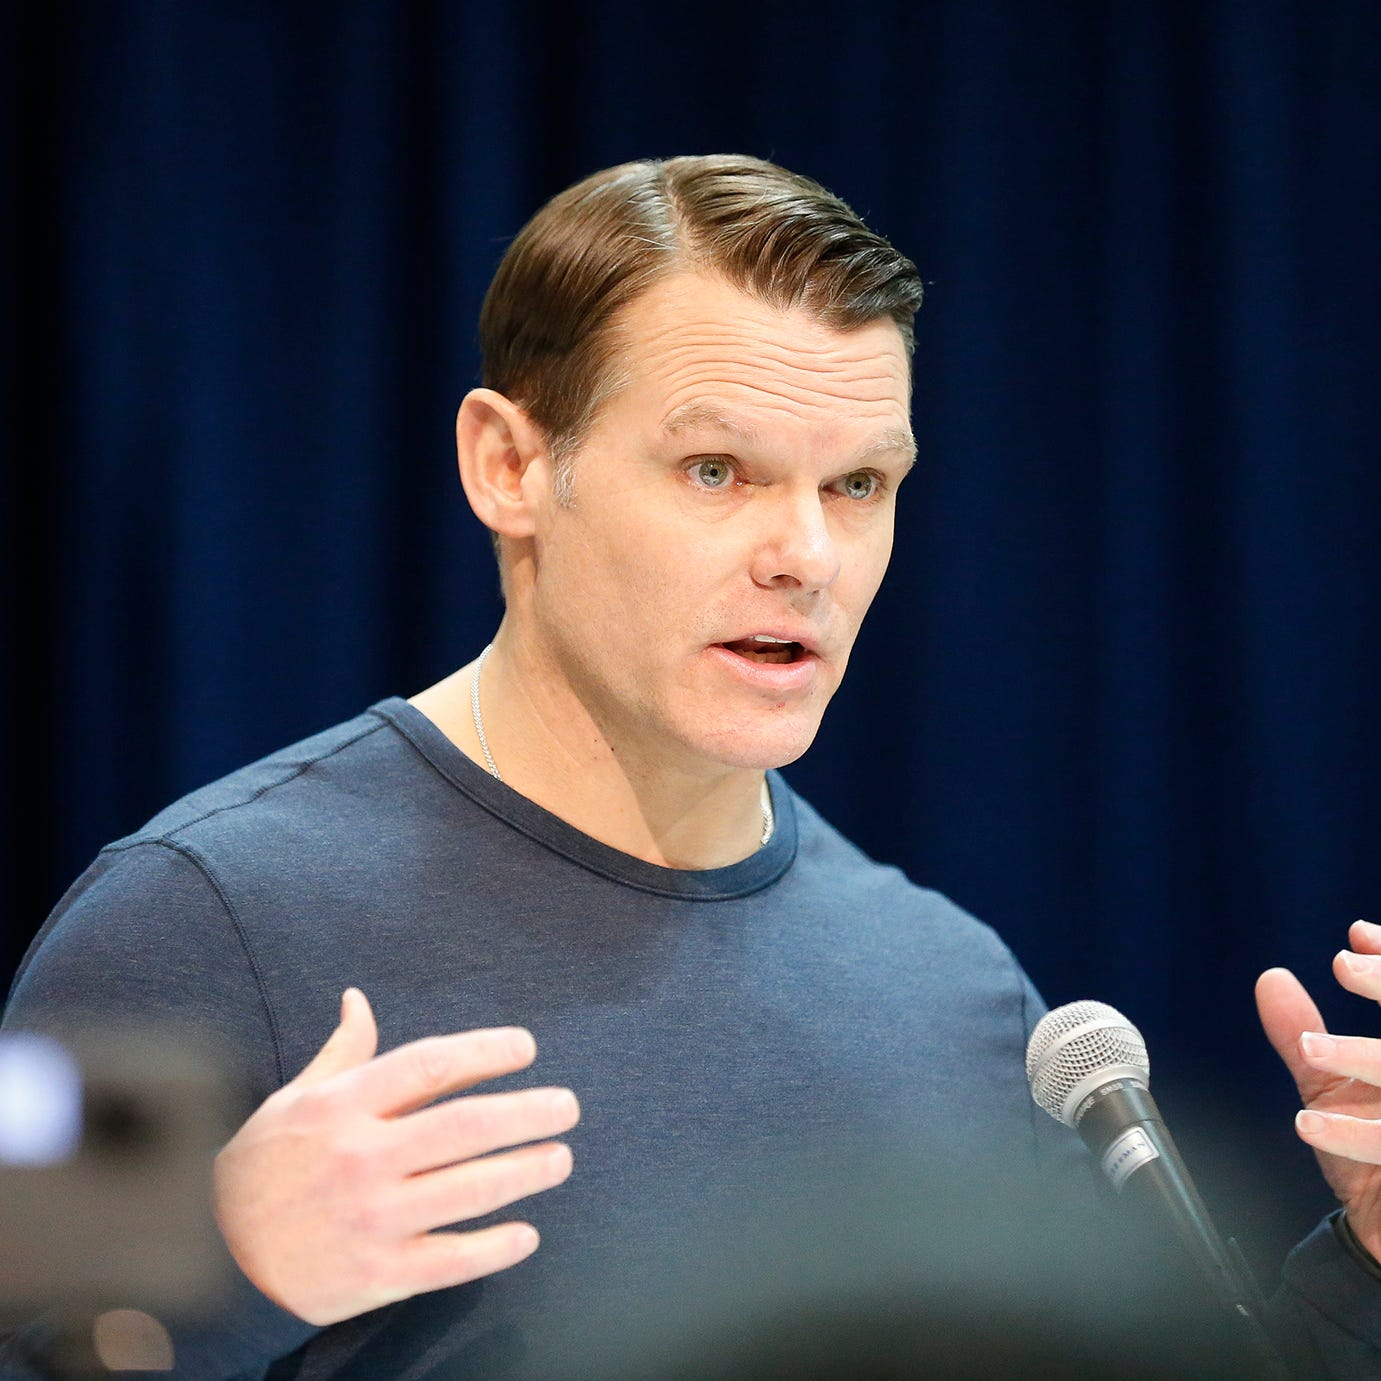 Chris Ballard breaks down Colts' free agency philosophy, recent visits